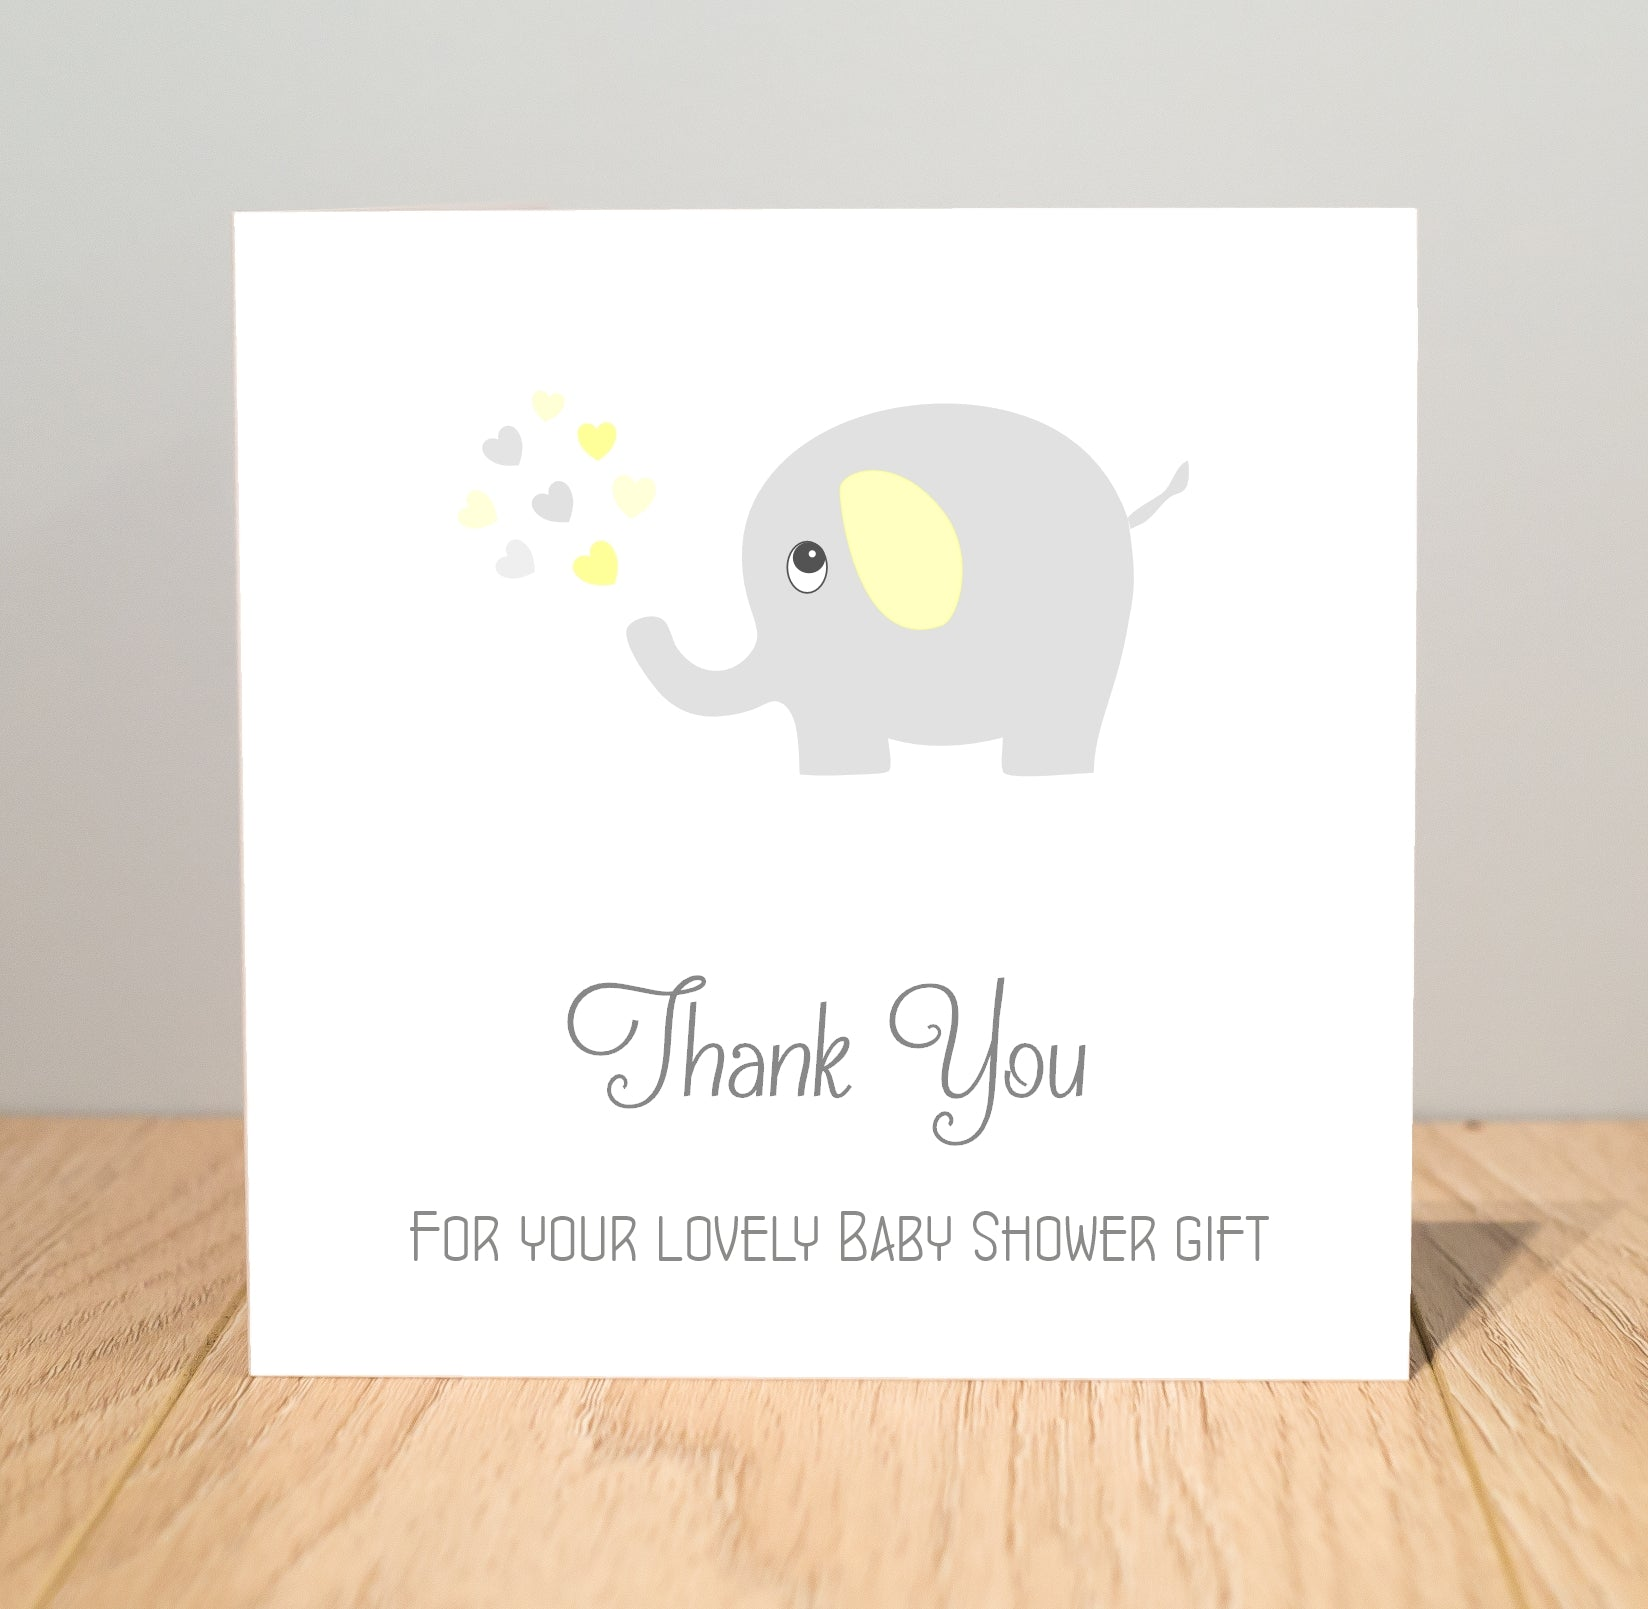 Personalised Baby Shower Thank You Cards - Yellow and Grey